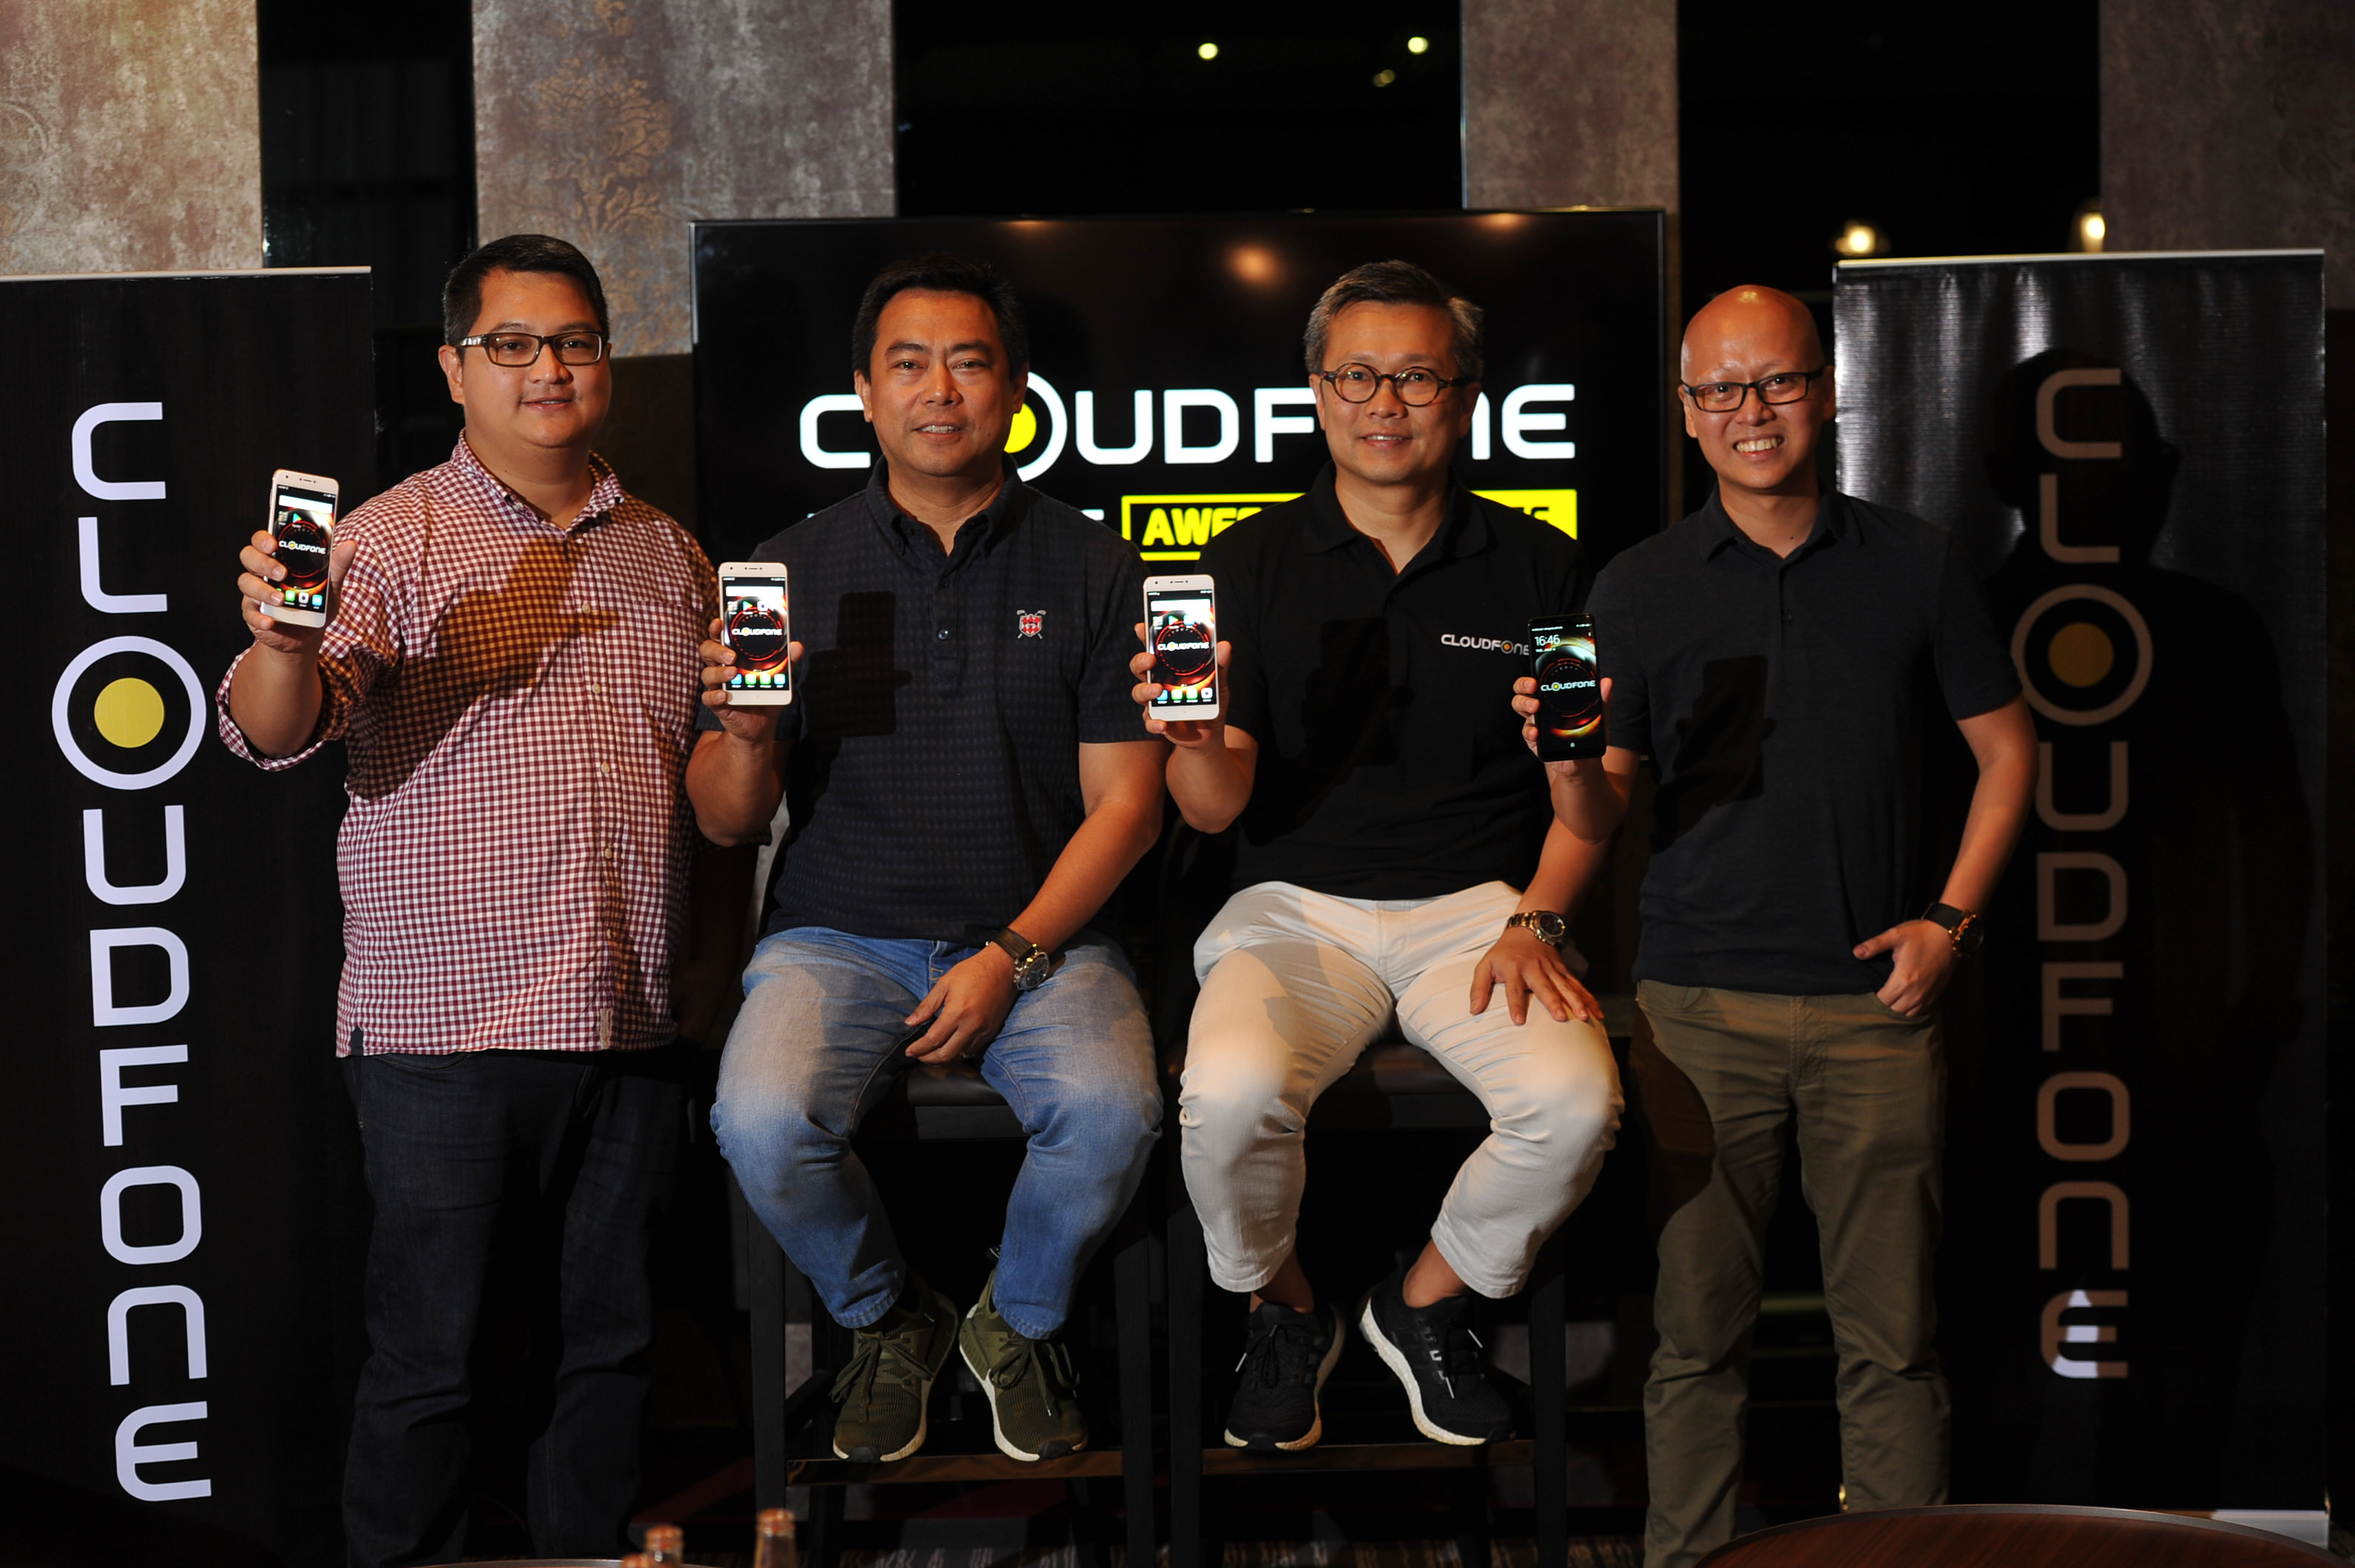 LR: Cloudfone Chief Product Officer Azer Villola, Cloudfone Chief Operating Officer Jaime Alcantara, Cloudfone President & CEO Eric S. Yu, and Chief Marketing Officer Joey Oreta.